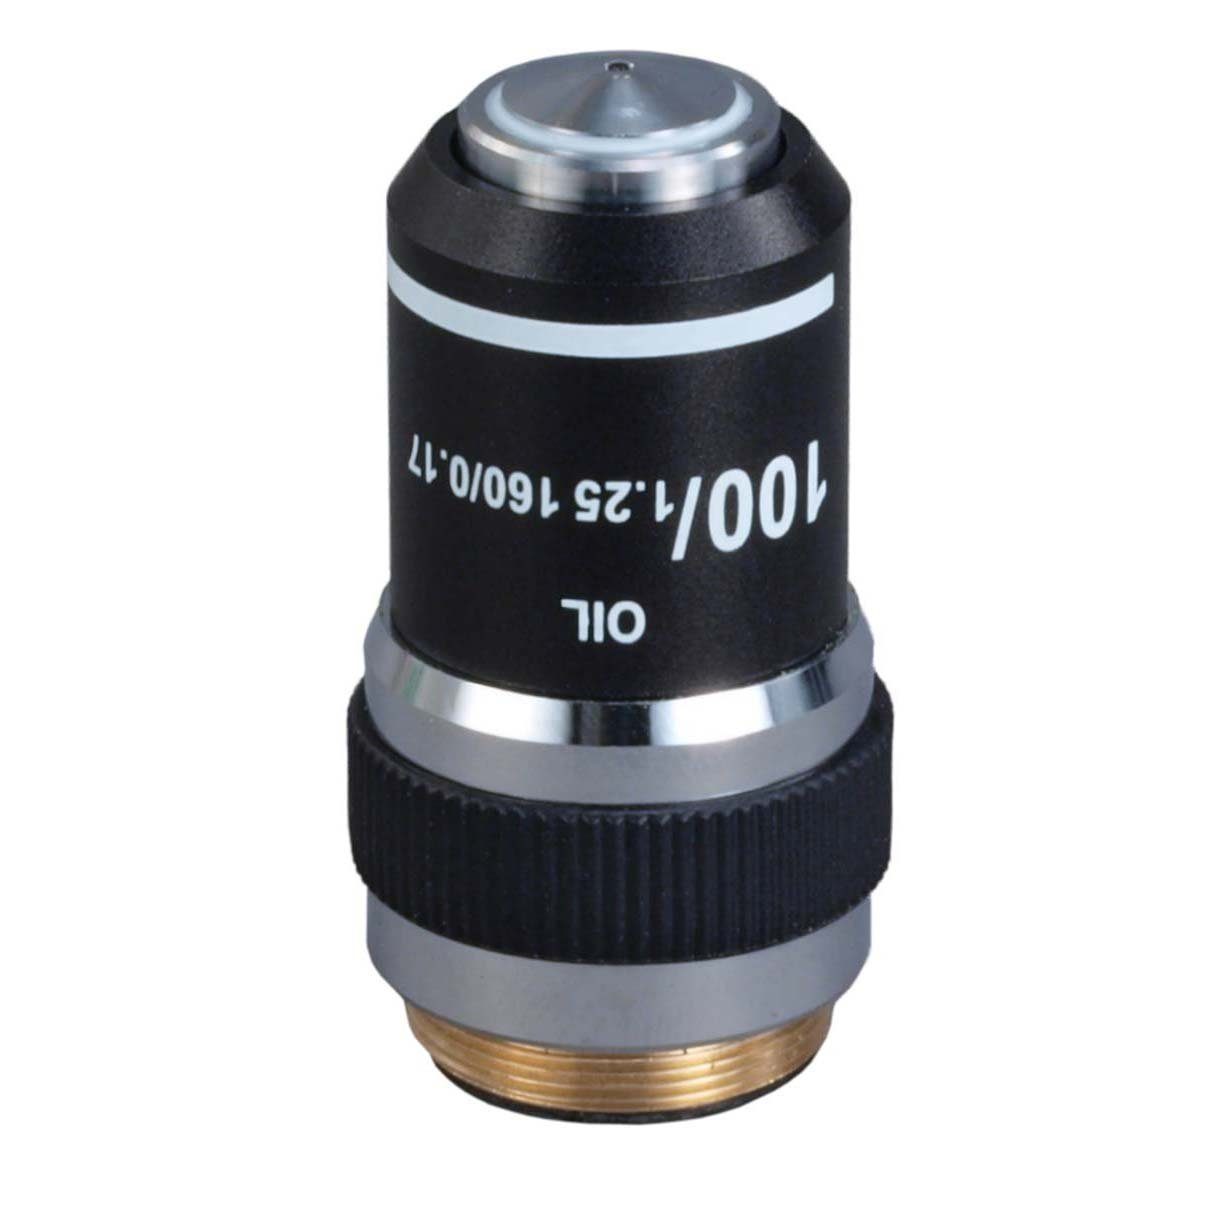 OMAX 100X Oil Spring Achromatic Compound Microscope Objective Lens